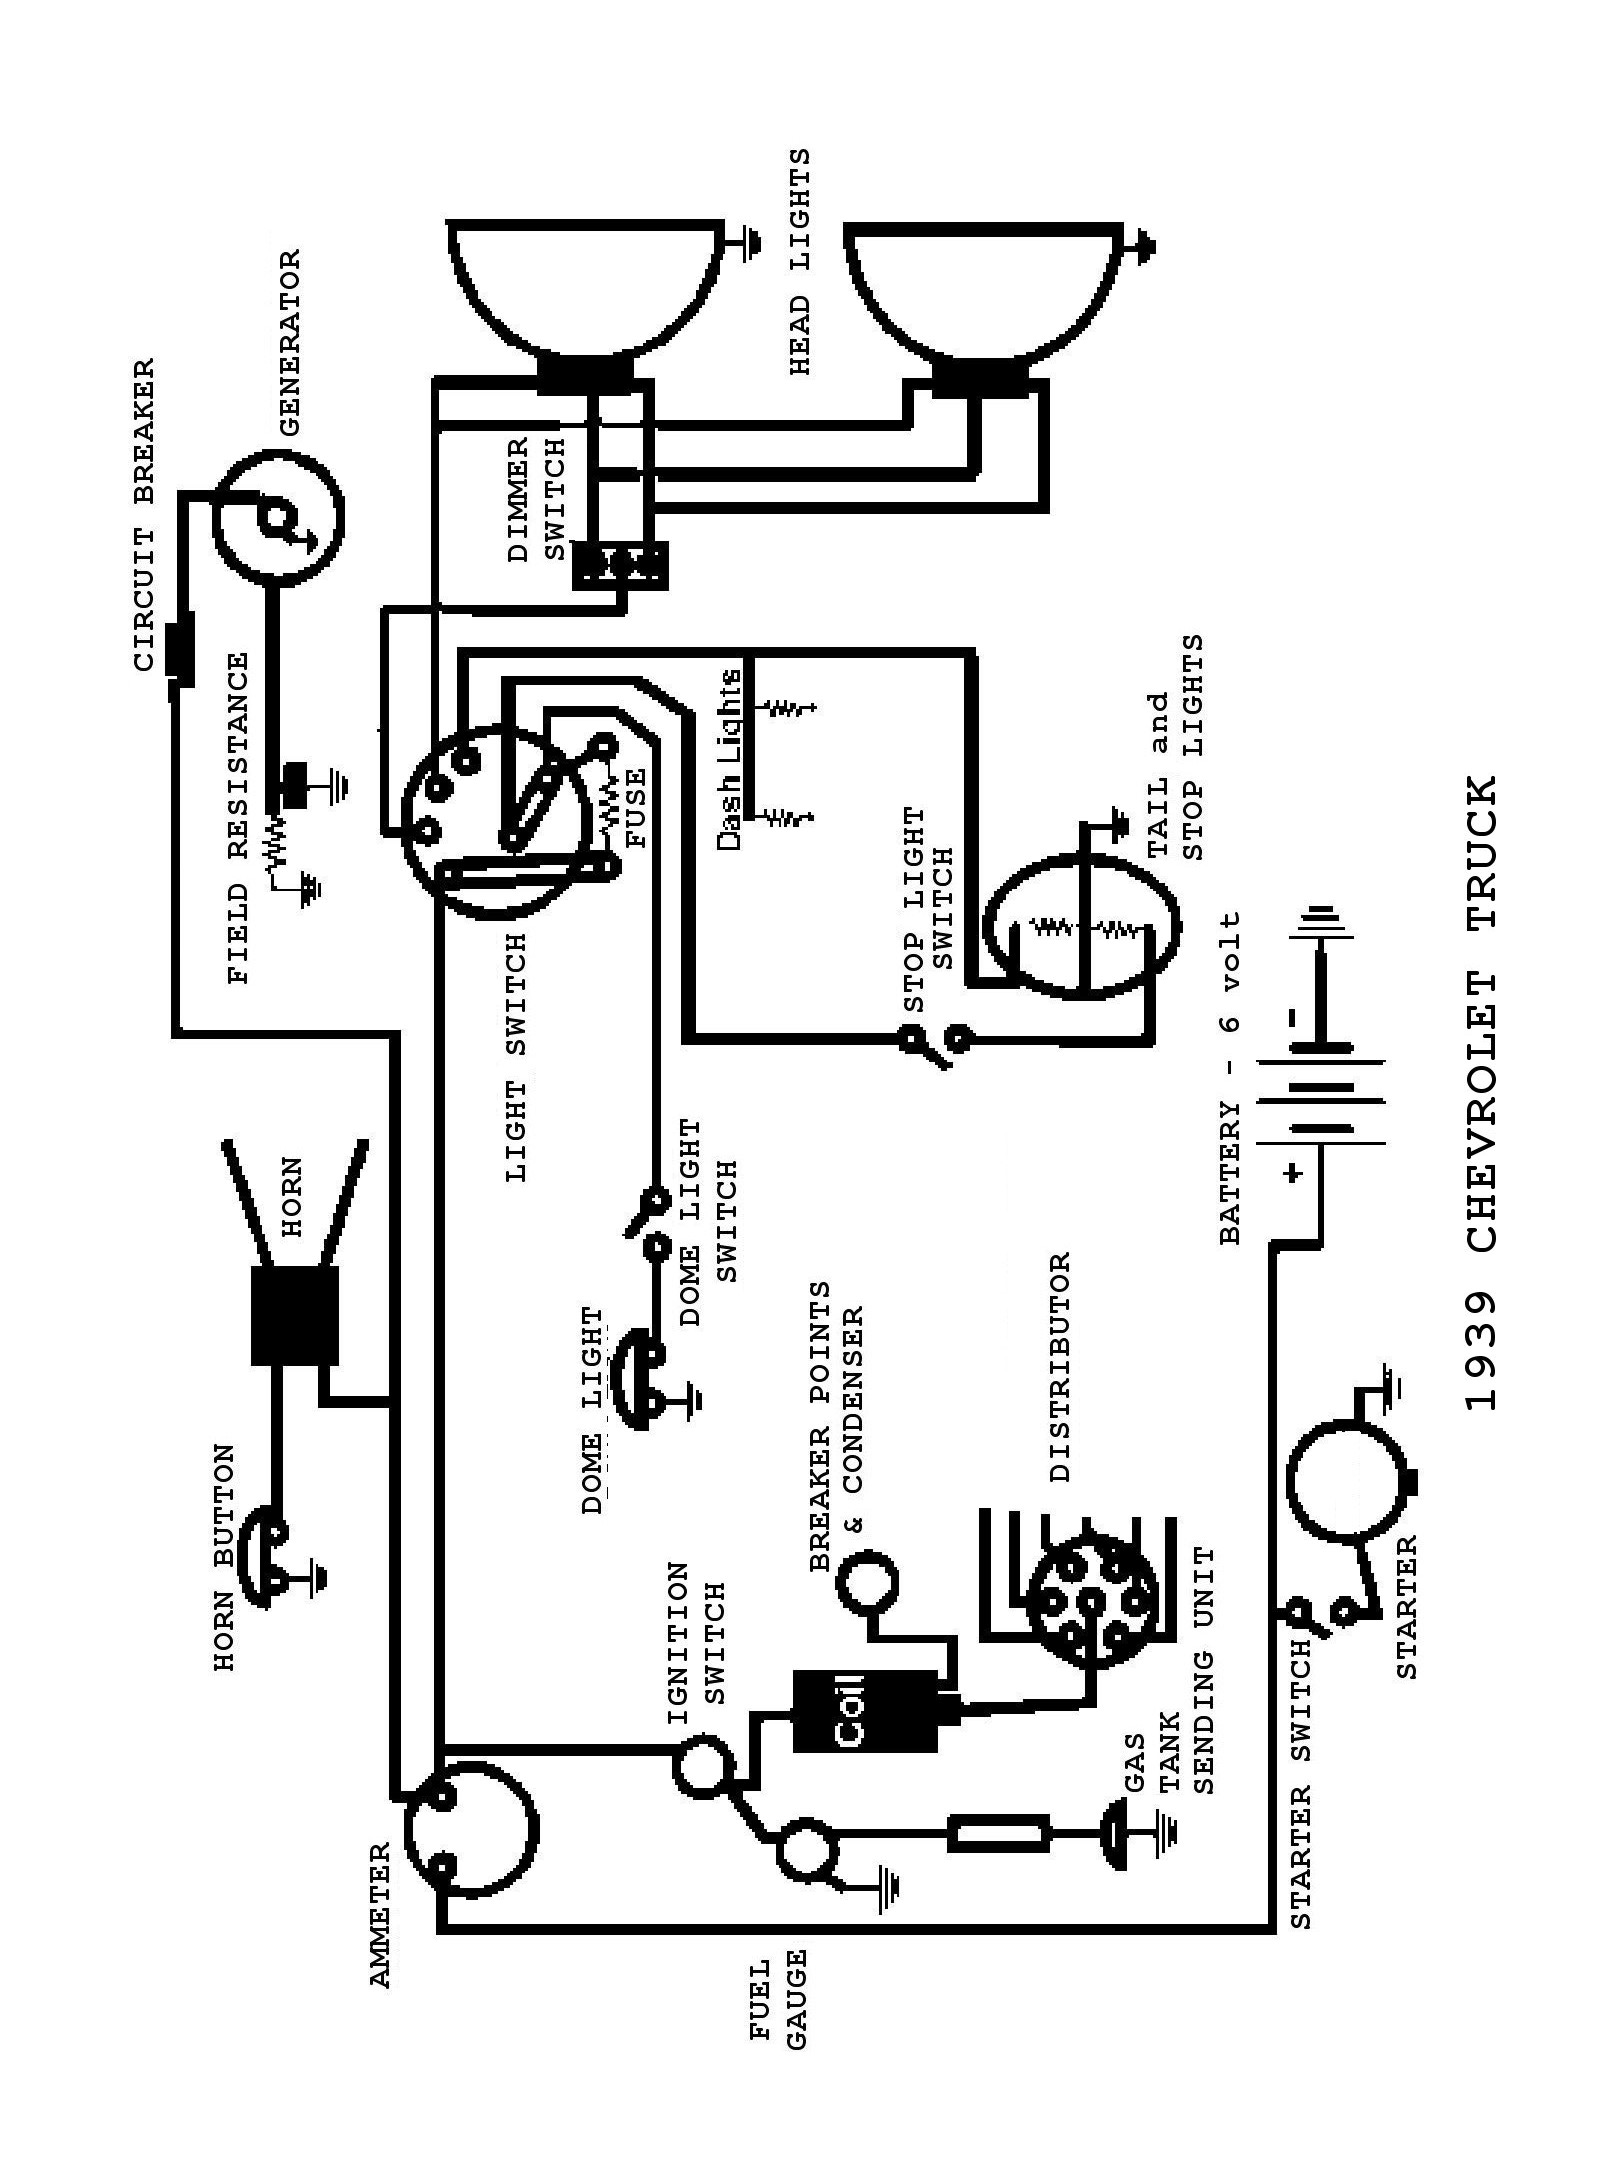 Fog Light Wiring Schematic. Engine. Wiring Diagram Images